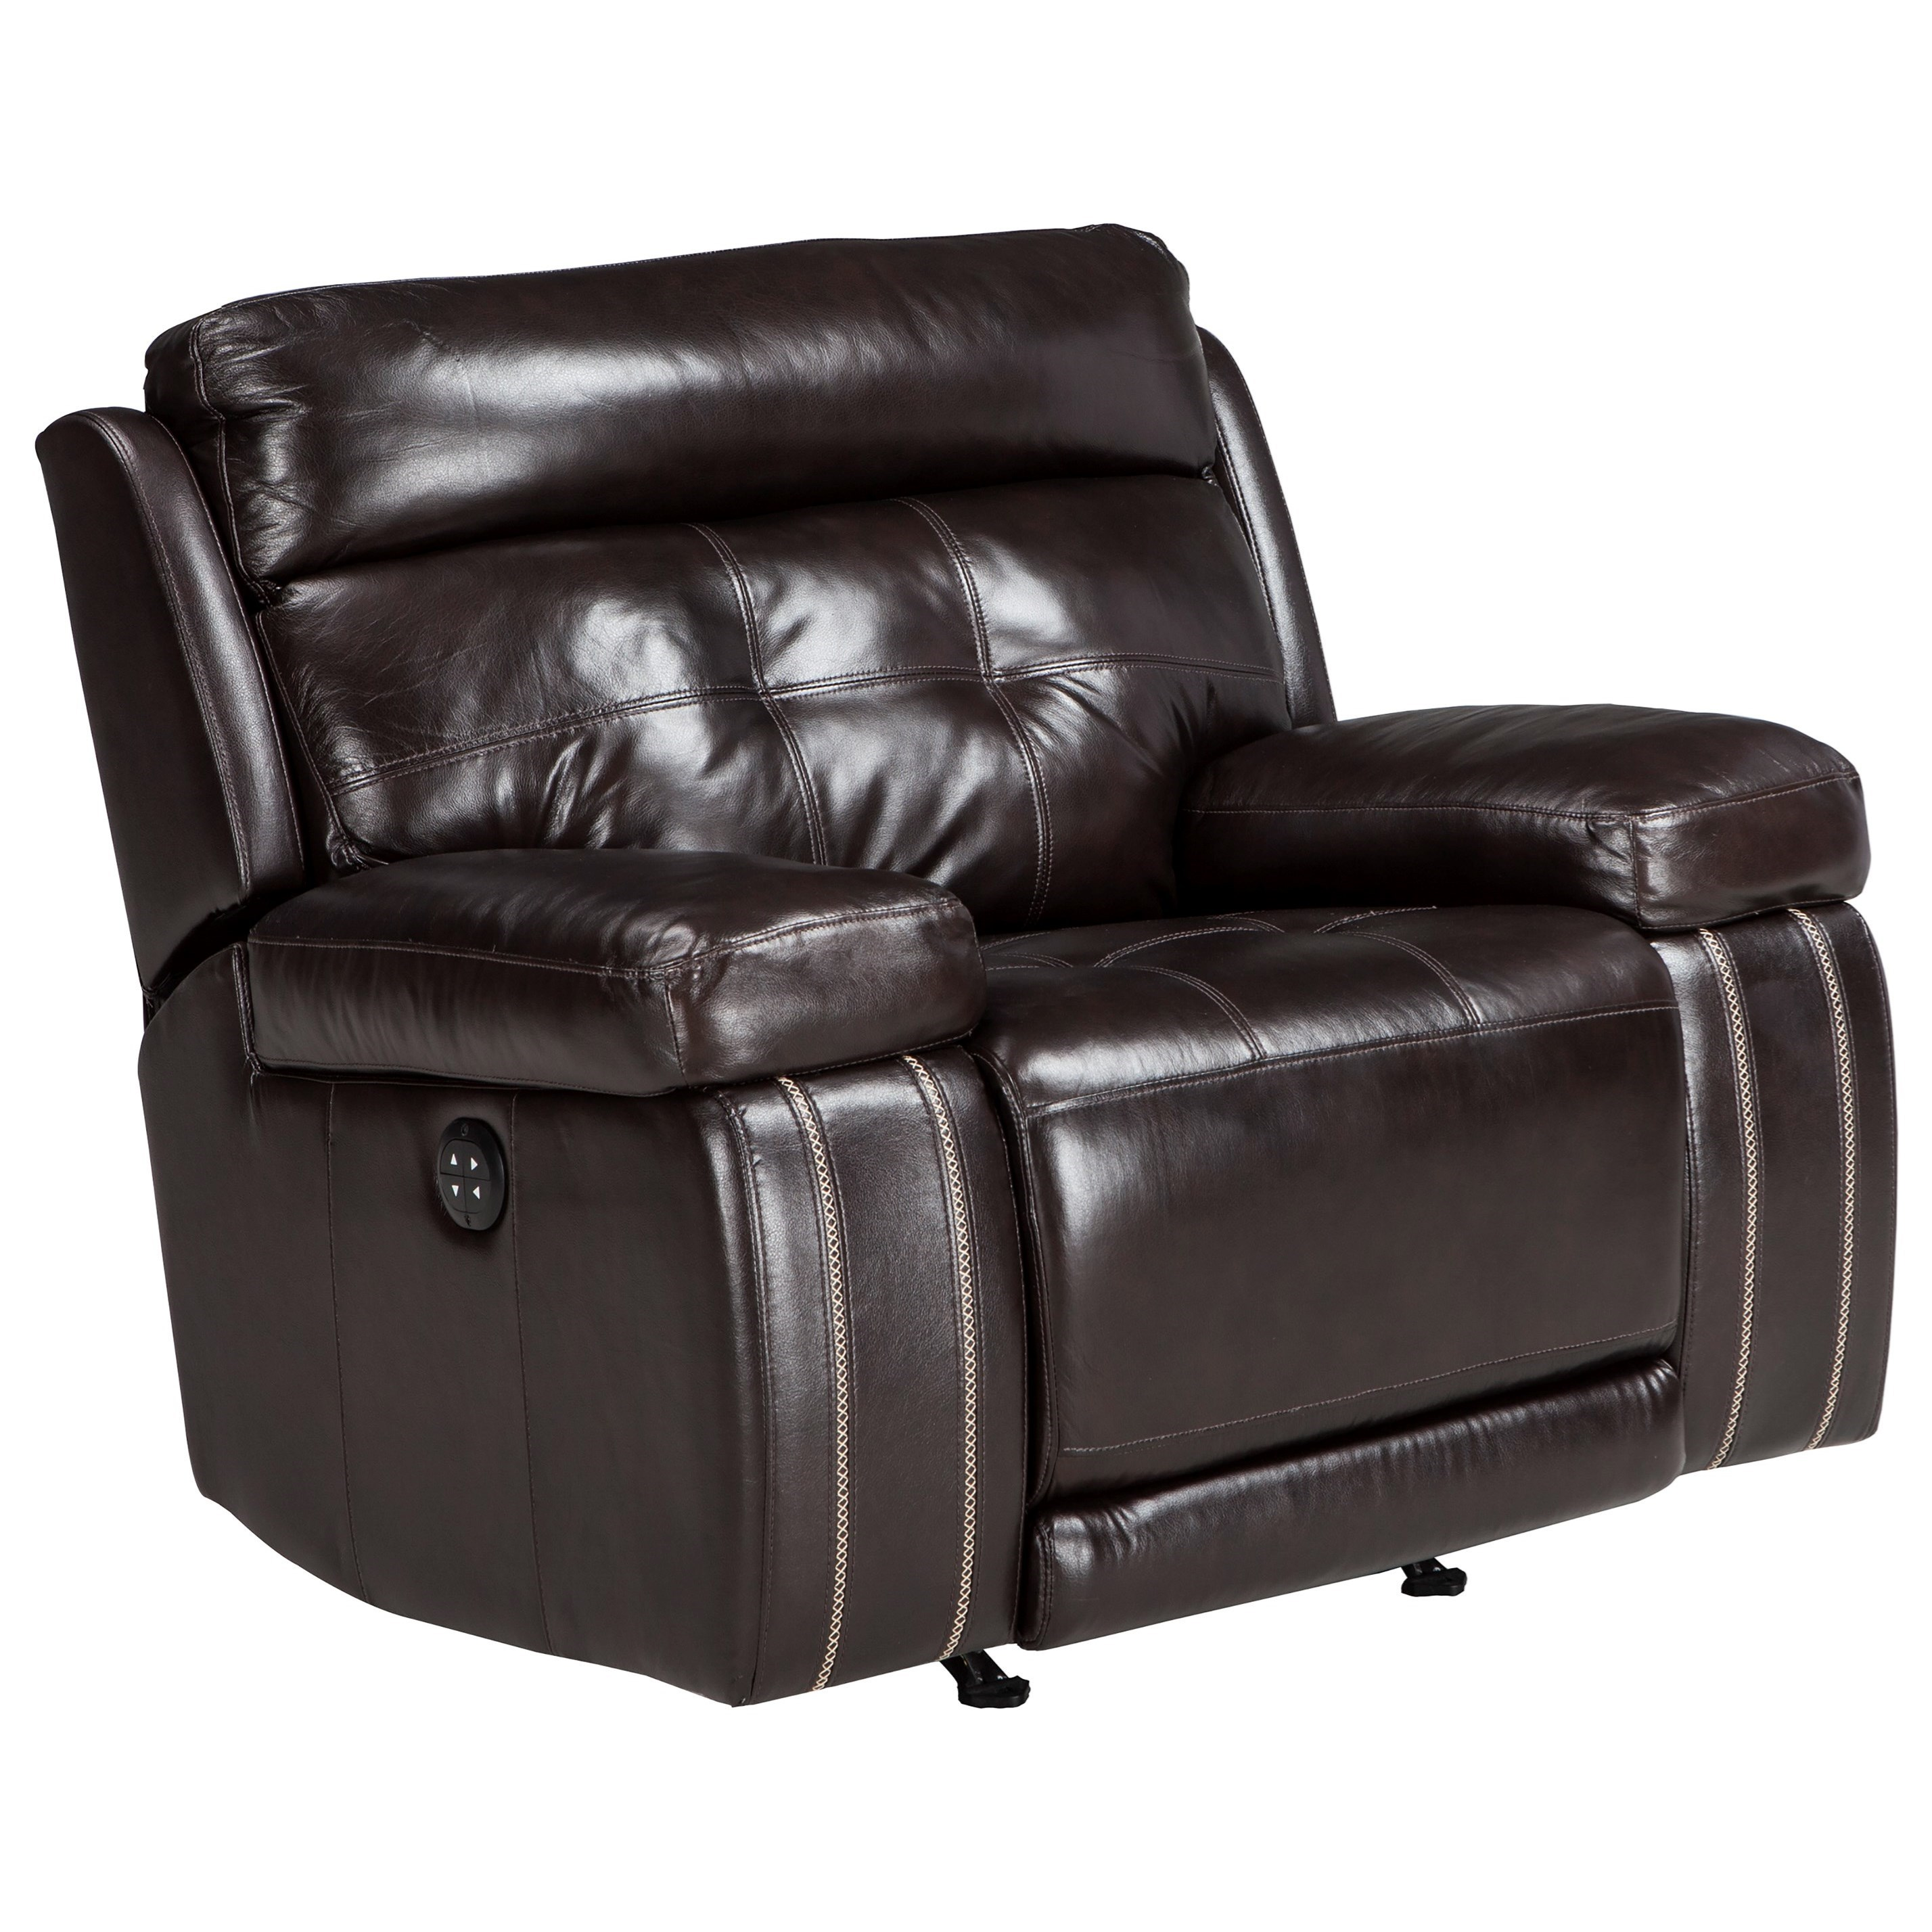 Signature Design by Ashley Graford Power Recliner with Adjustable Headrest - Item Number: 6470213